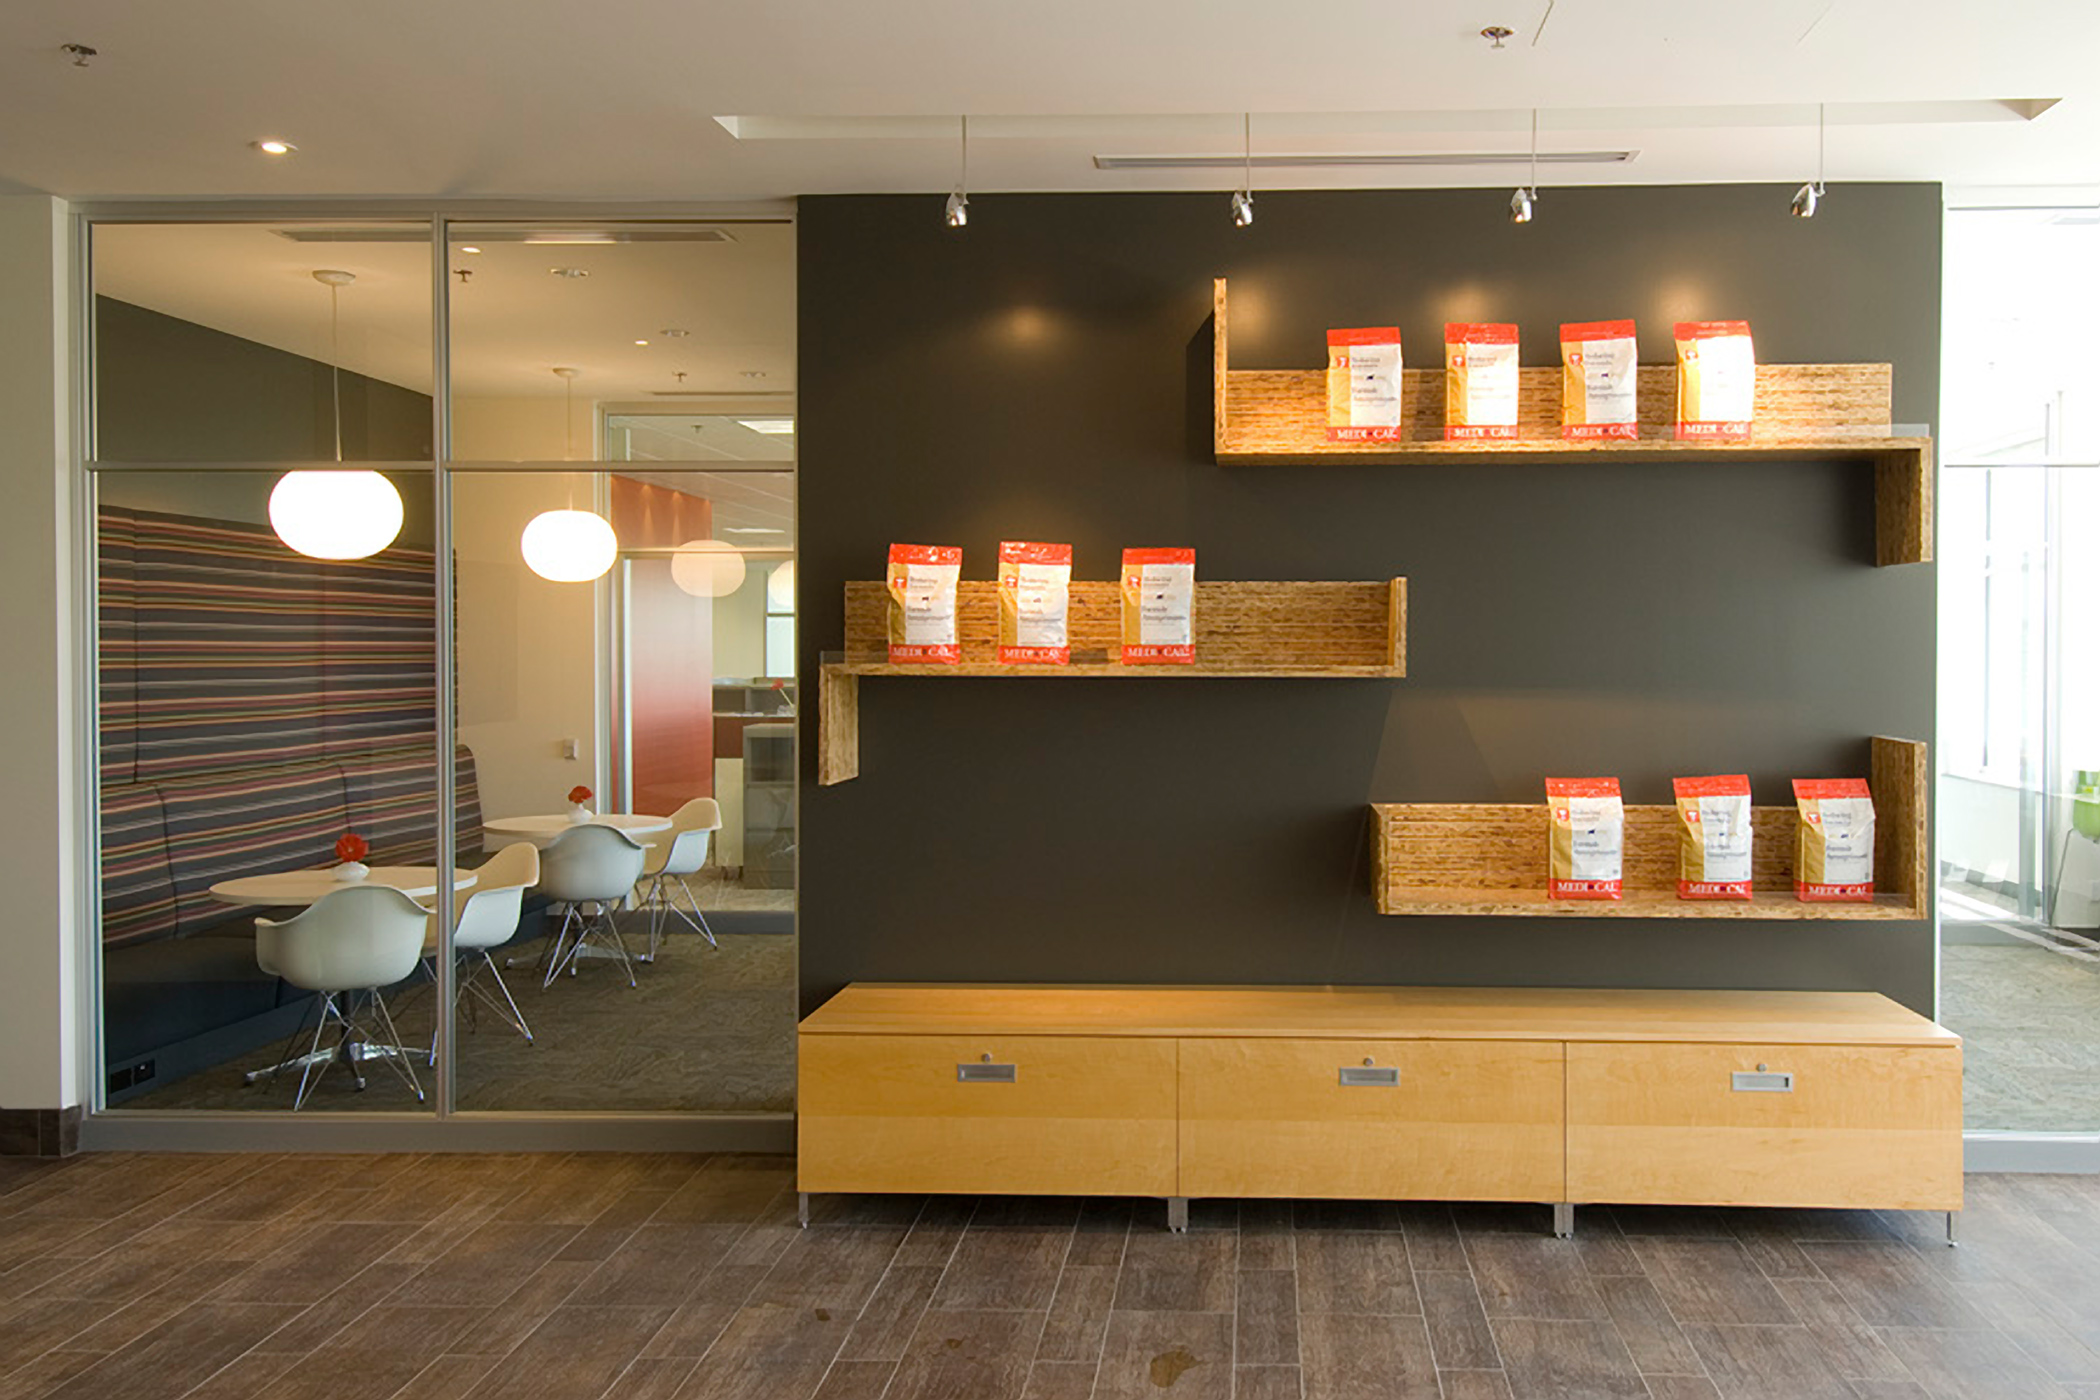 Creative Scale image of office interior